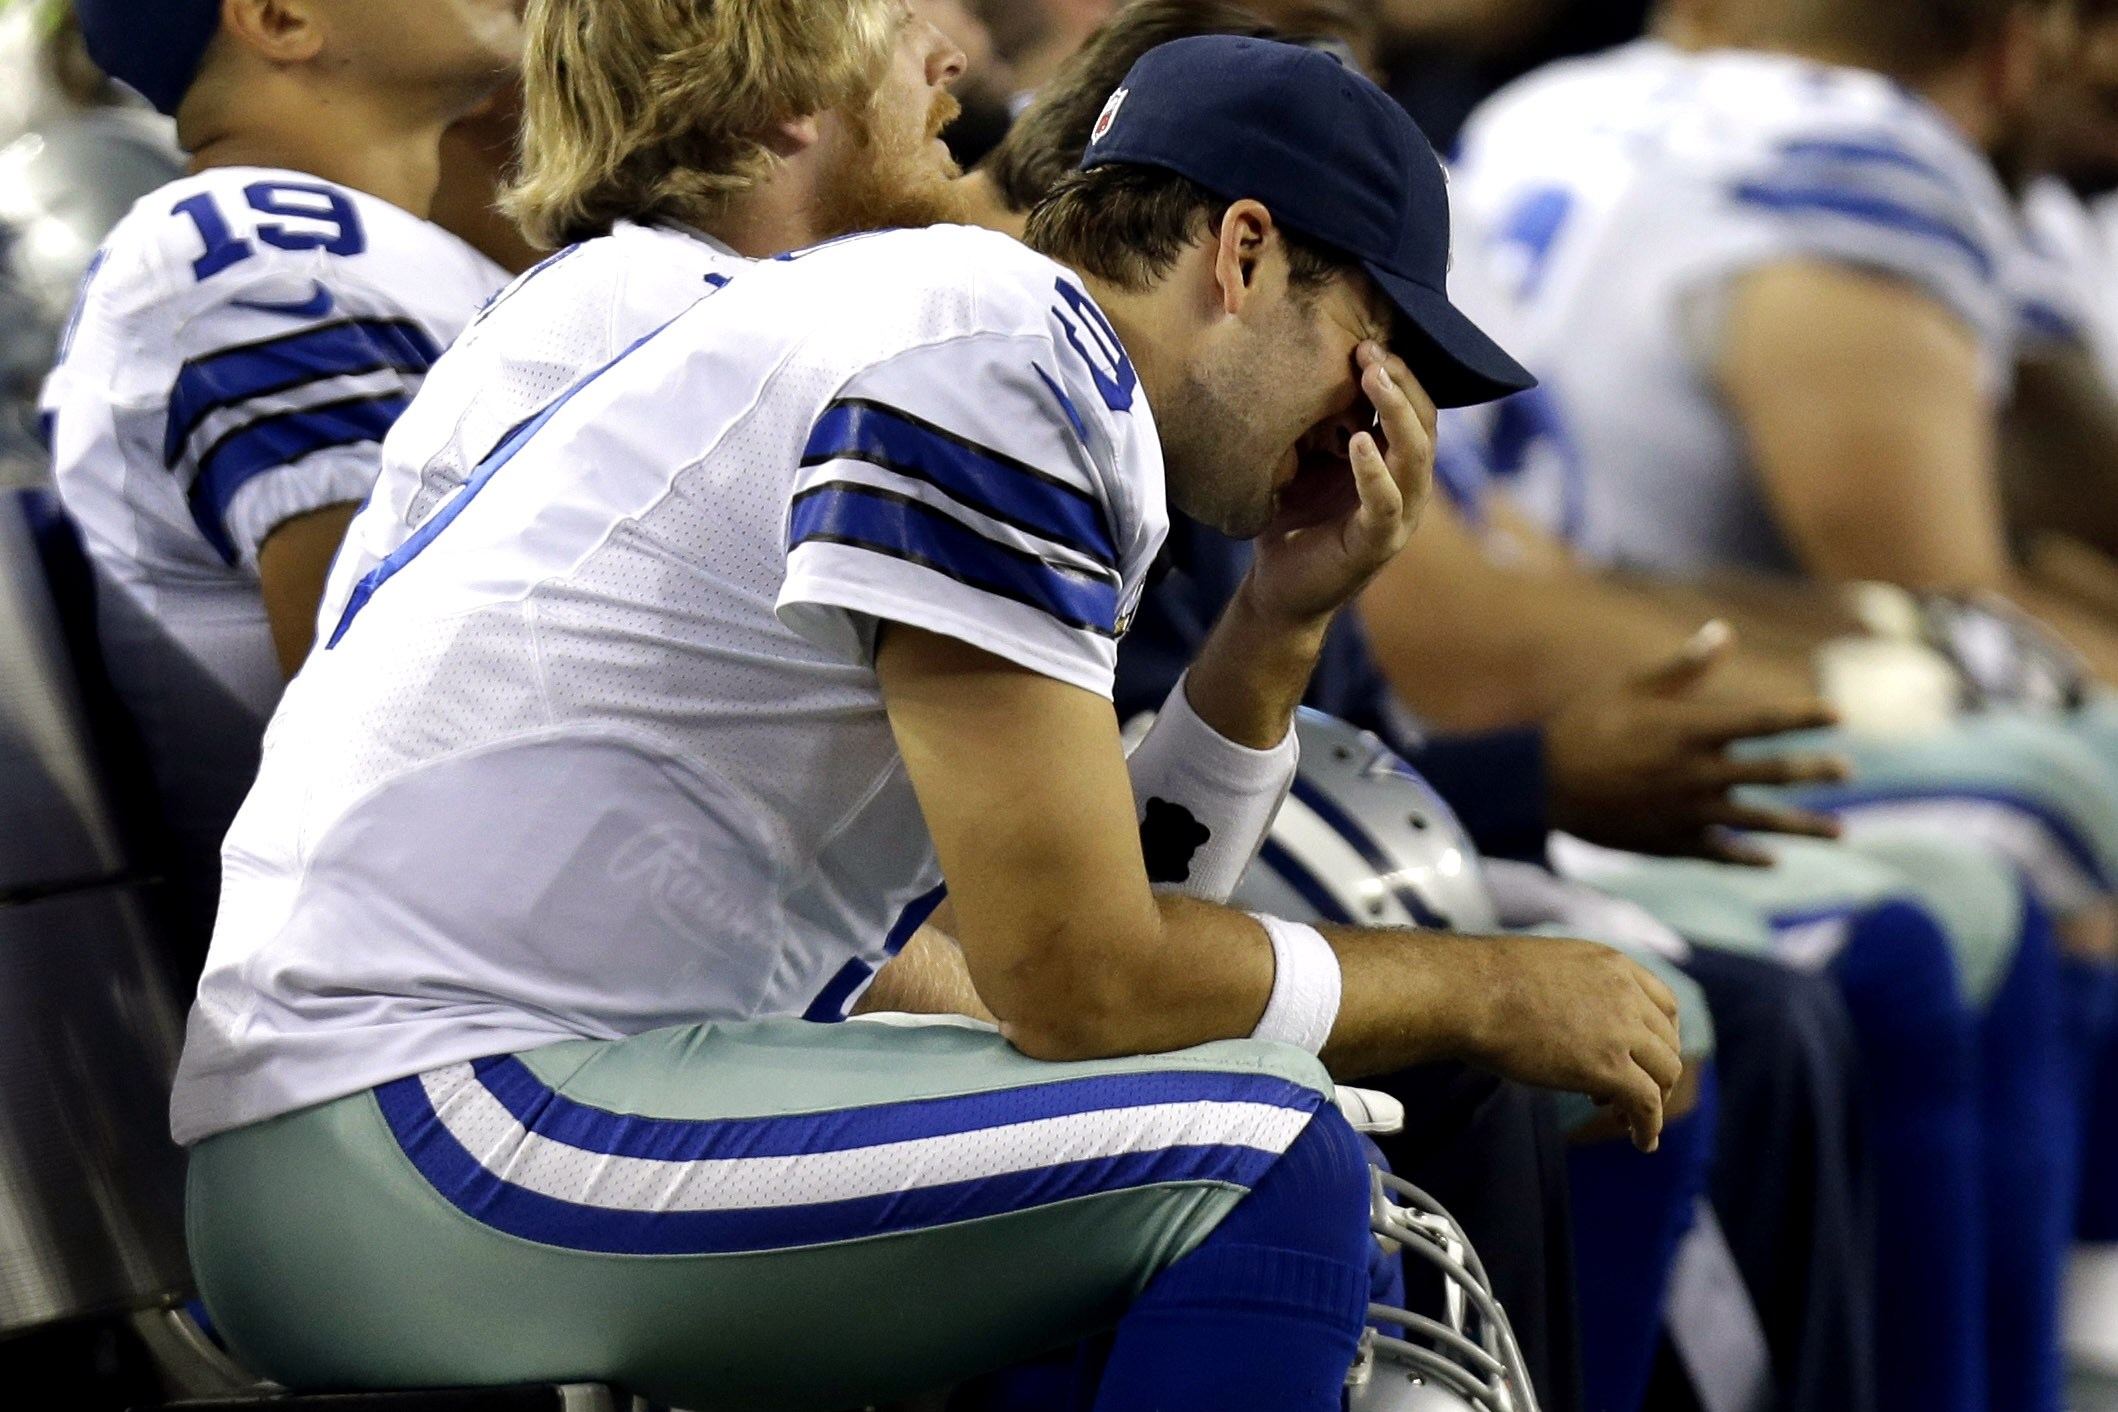 Tony-romo-injury-the-ripple-effect